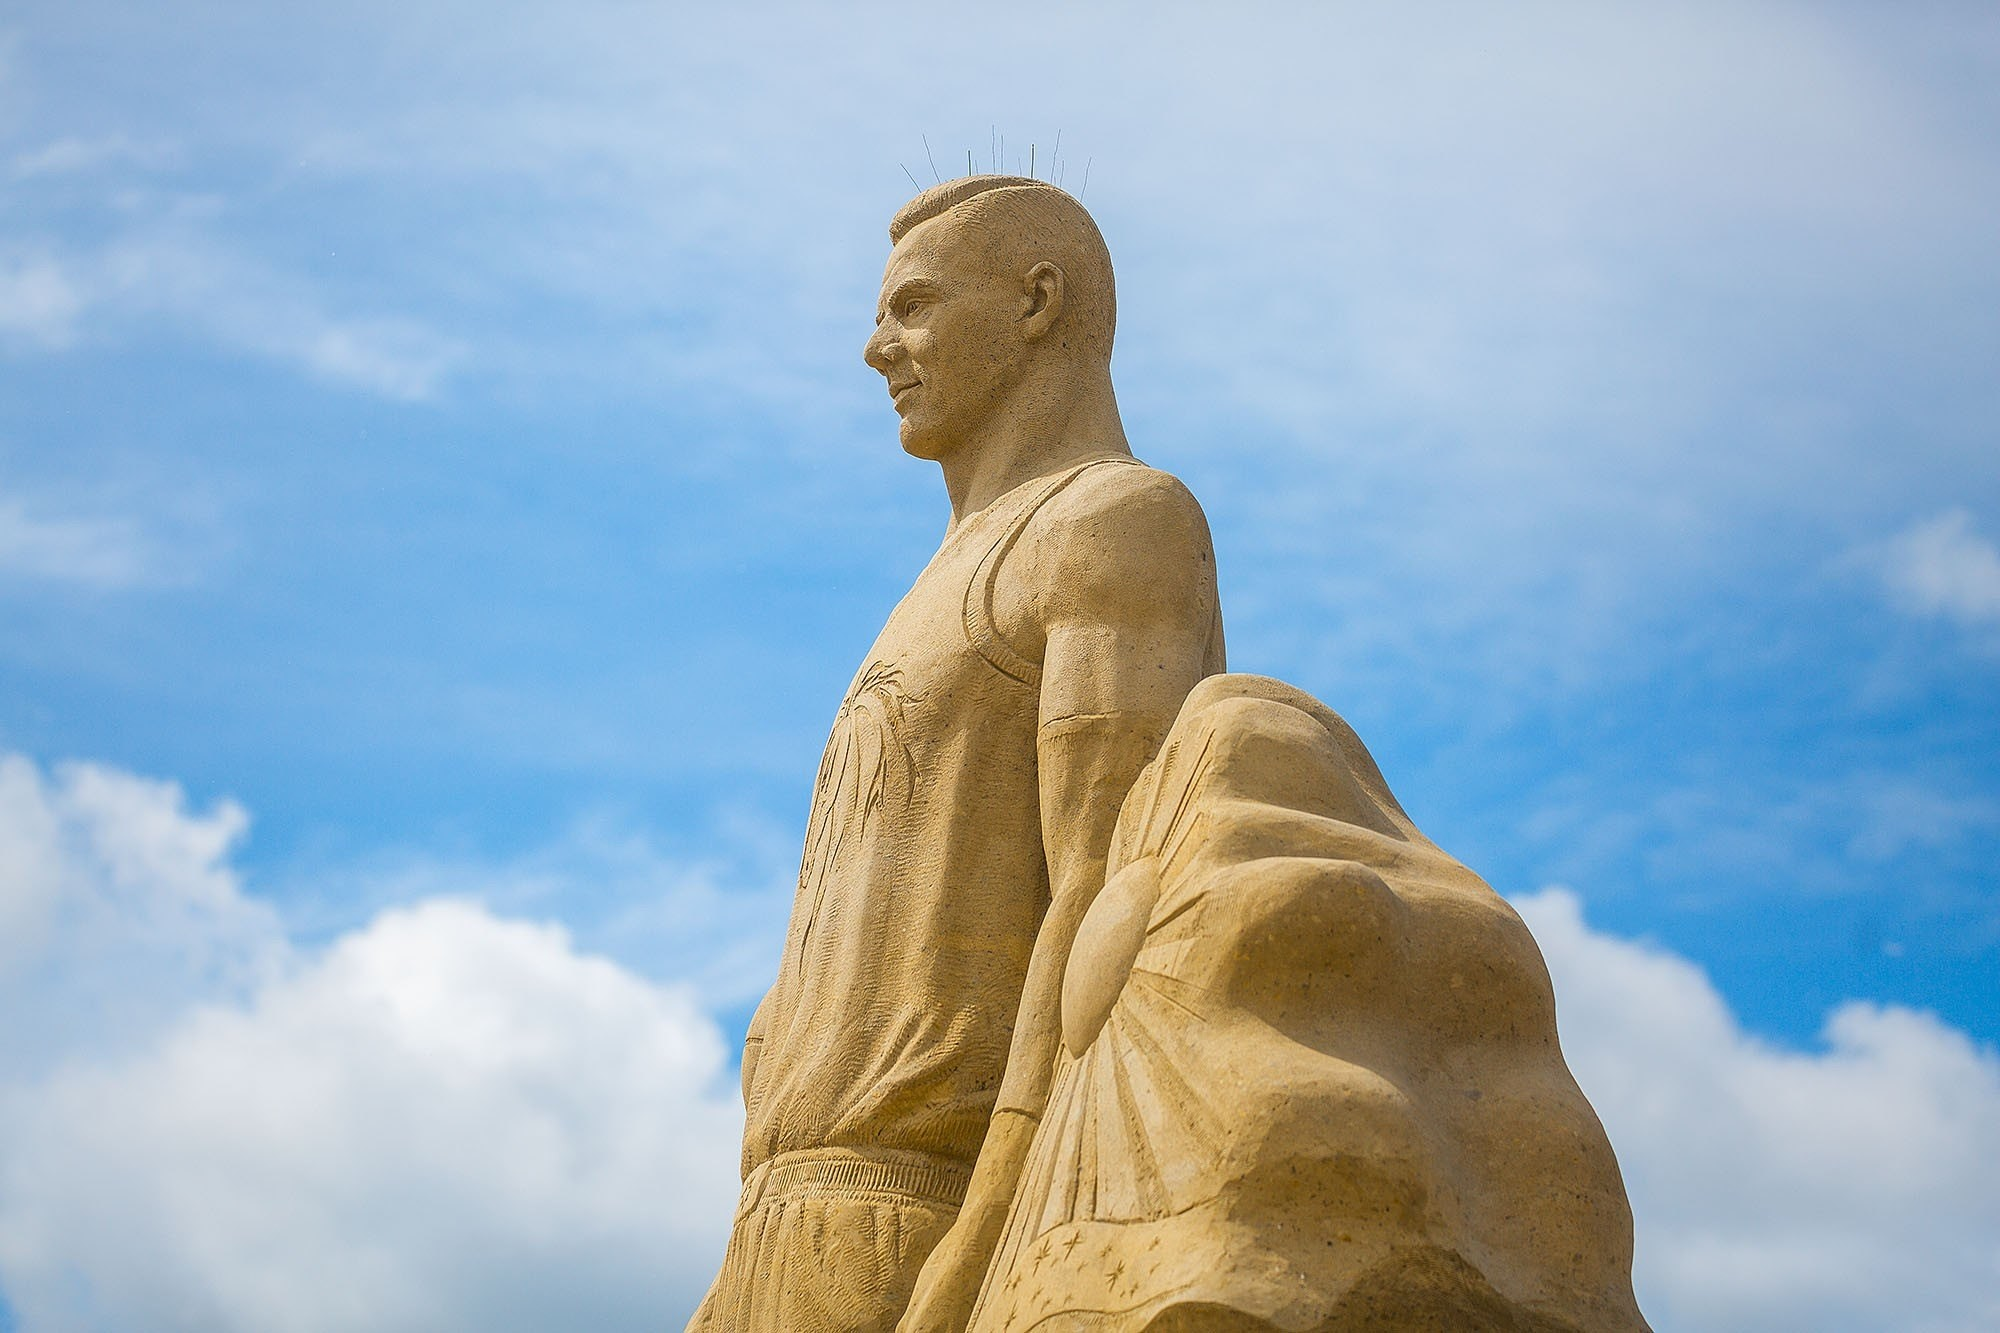 Some of the sand sculptures are ready; the sand park will be open from 19 June